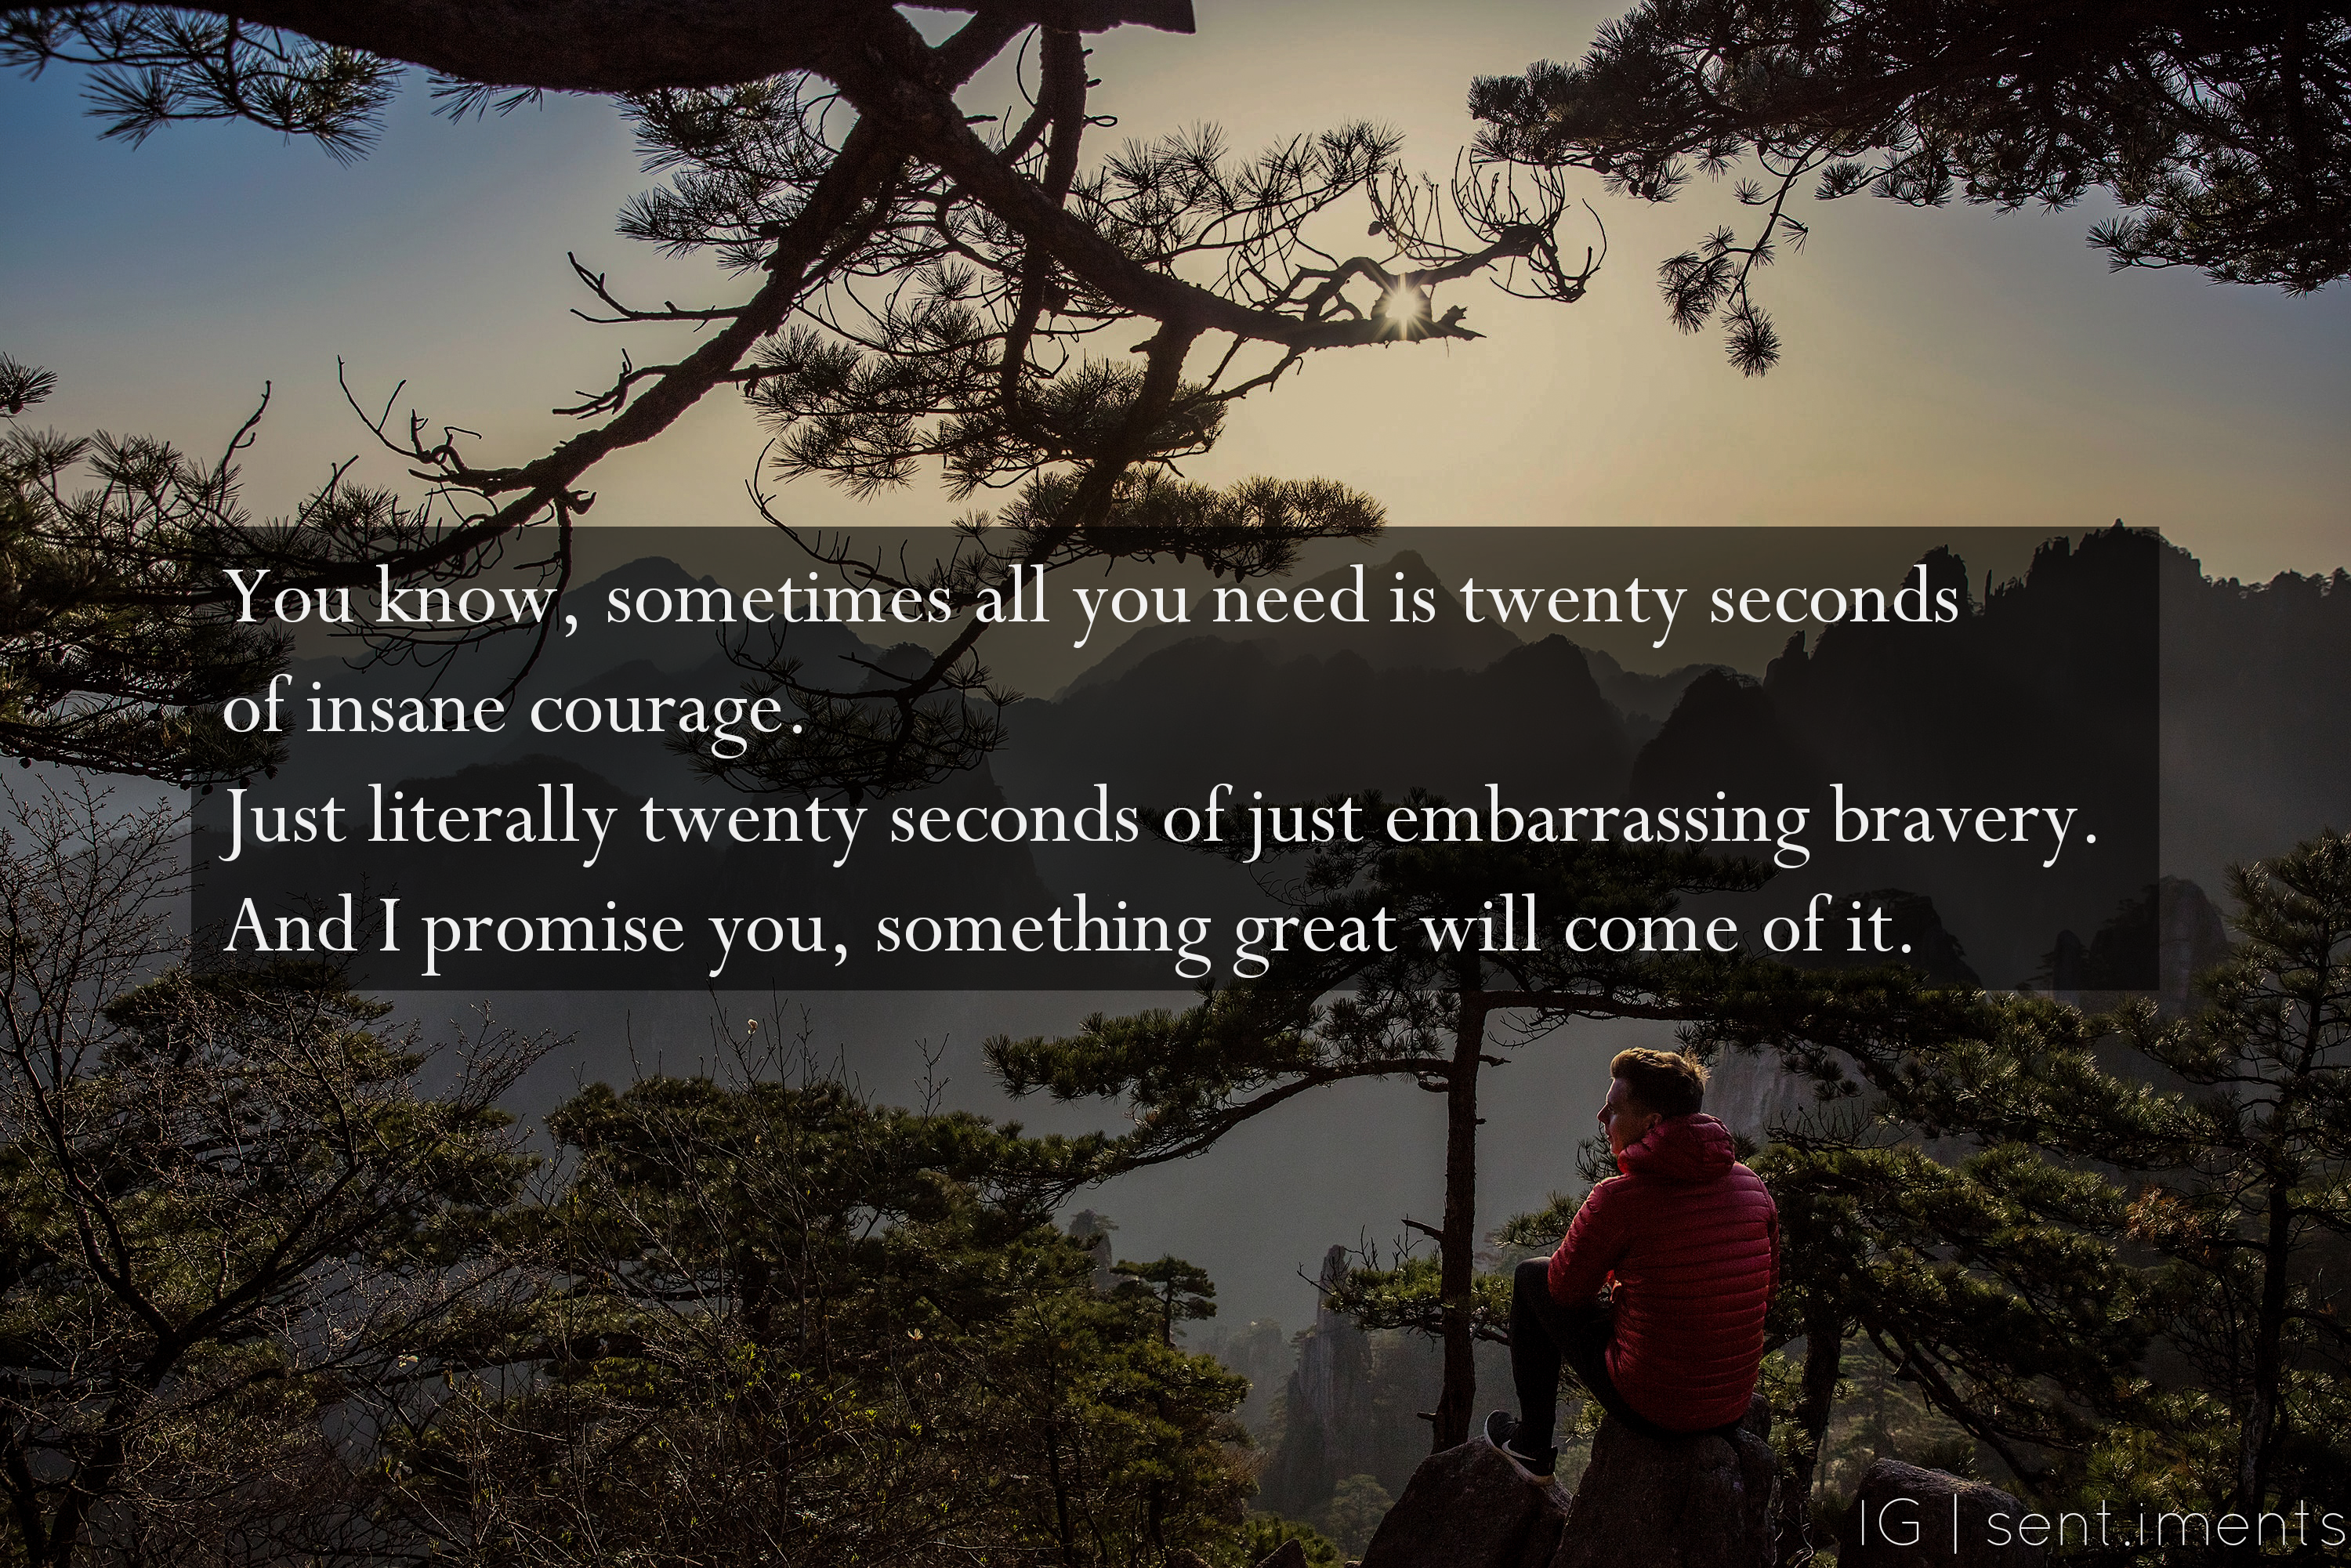 """You know, sometimes all you need is twenty seconds of insane courage. Just literally twenty seconds of just embarrassing bravery. And I promise you, something great will come of it."" By Benjamin Mee [3000 X 2001]"